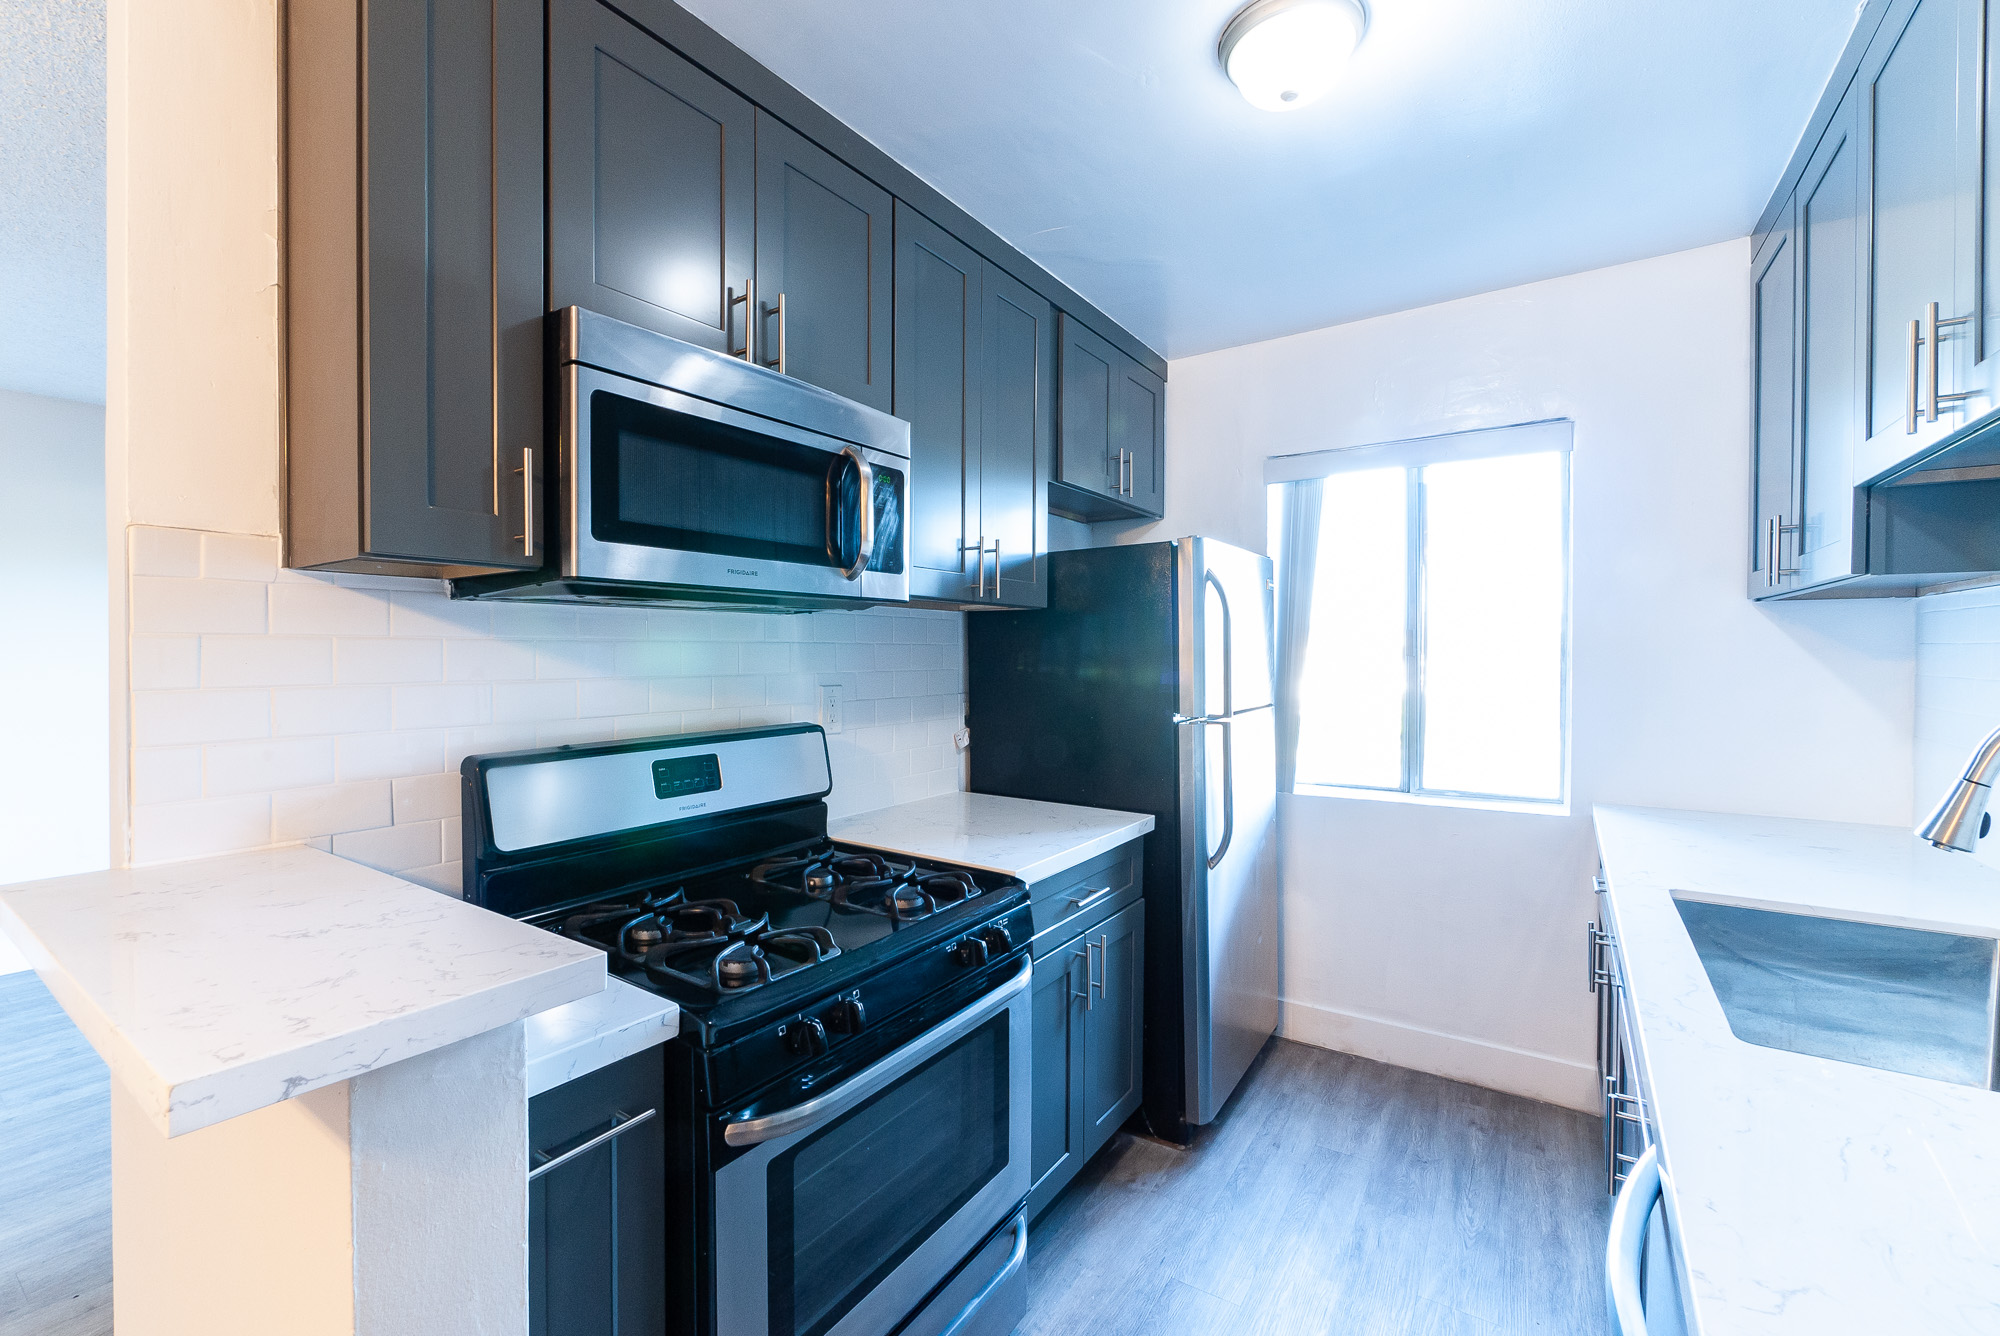 IT'S A MOD WORLD! BRAND NEW RENOVATION! MID - CENTURY 2 BD / 1.5 BA -STAINLESS APPLIANCES - PARKING